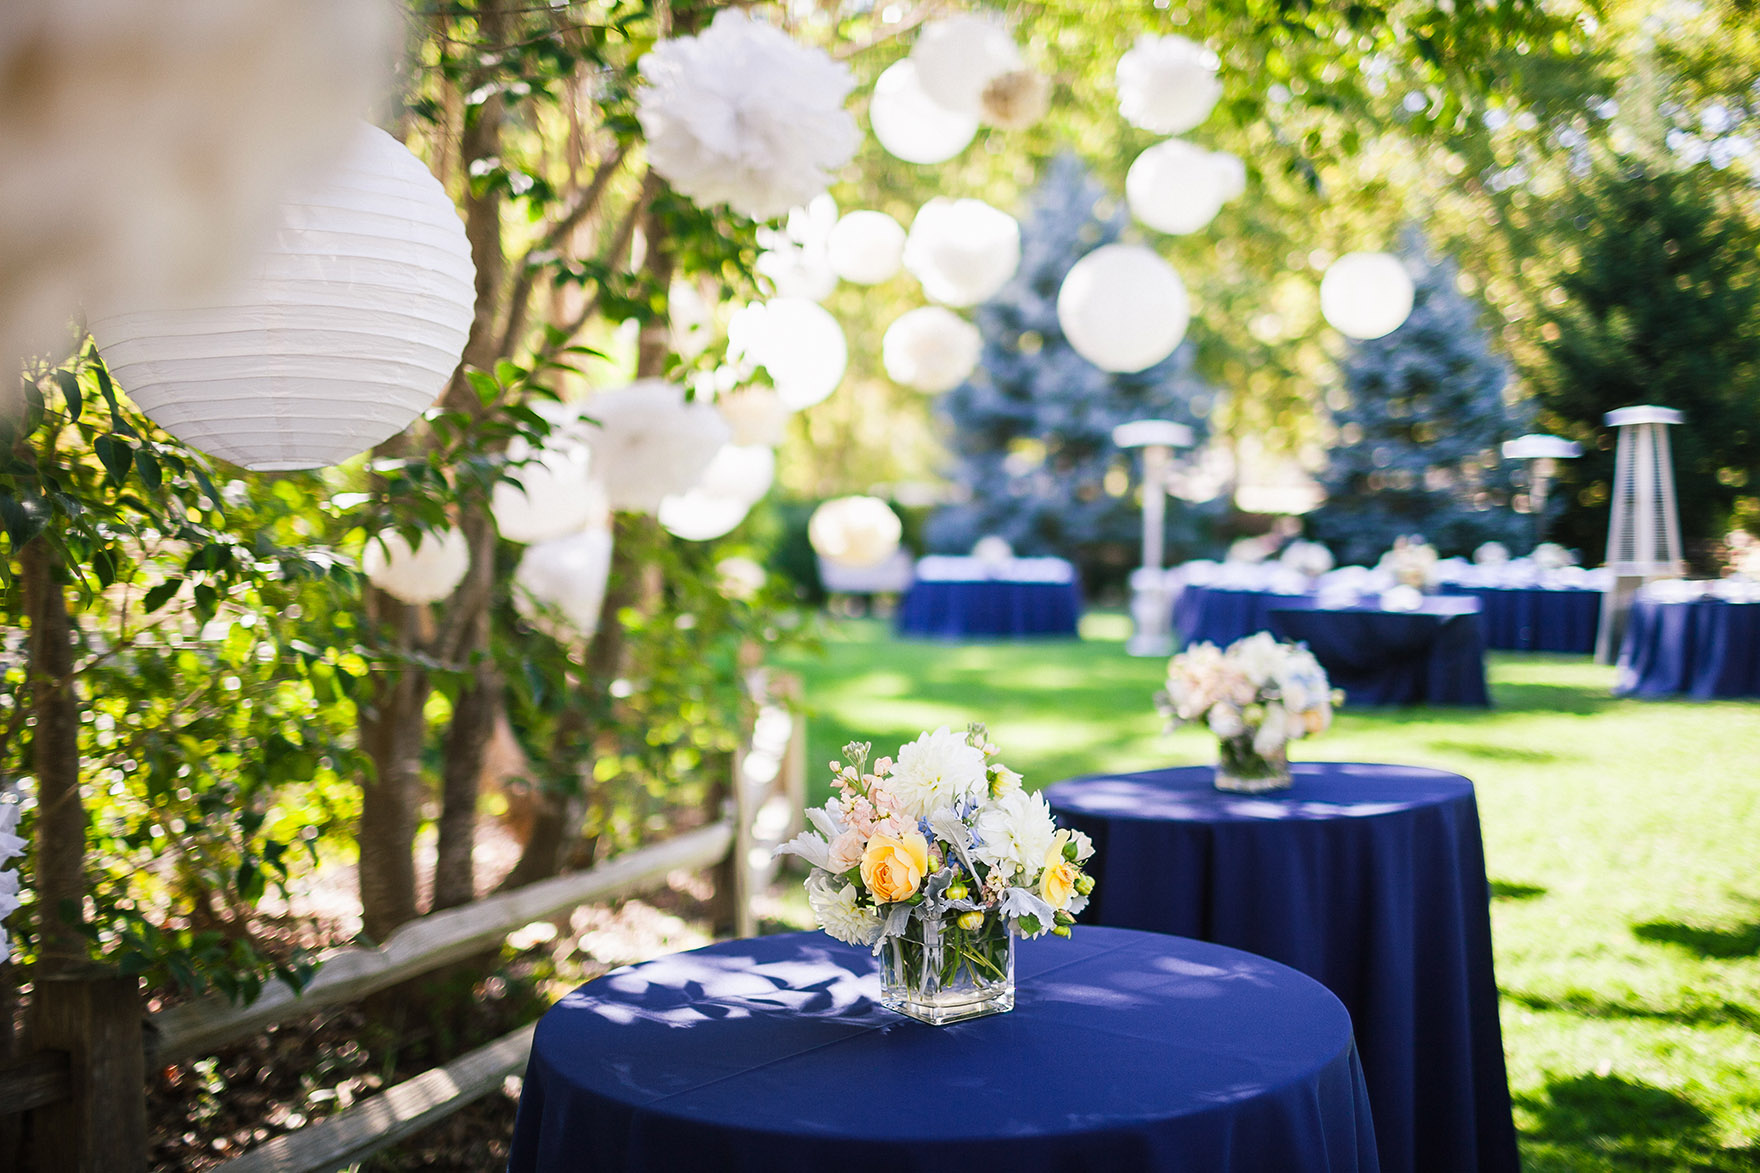 table settings blue table cloth white globe lights dangle from green lush trees with floral center pieces flowers waiting for the highlands park wedding reception to begin start at a highlands park wedding the perfect felton wedding venue santa cruz wedding venue redwood wedding venue santa cruz wedding photographer